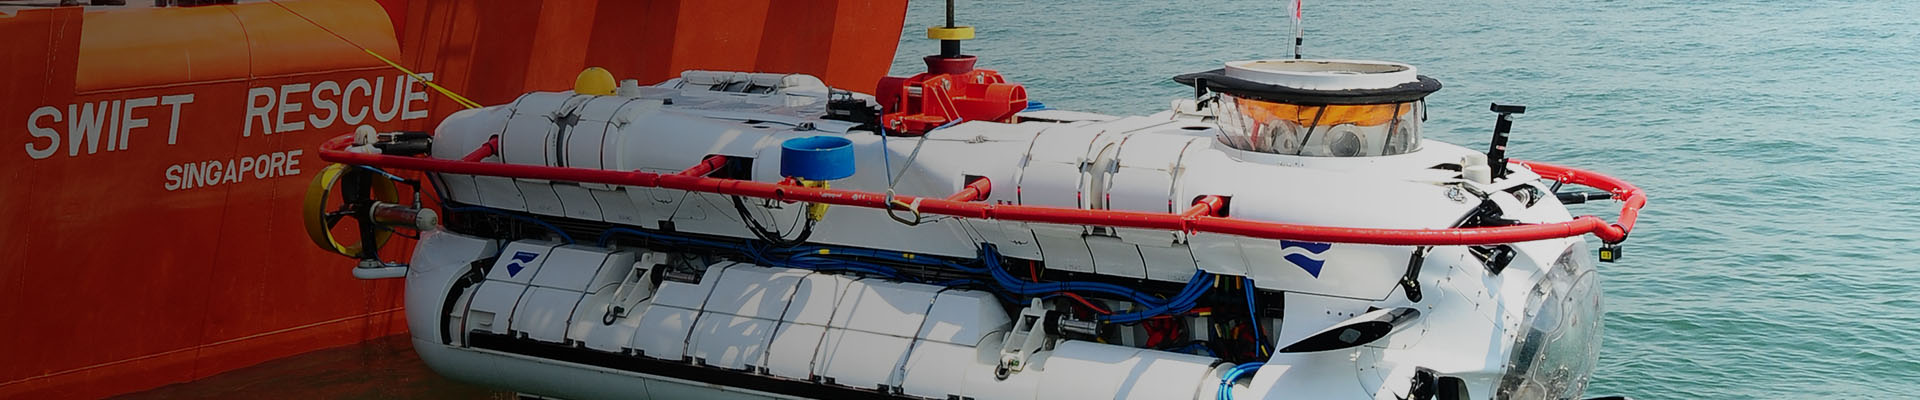 1920x400_gradient banner _submarine rescue.jpg